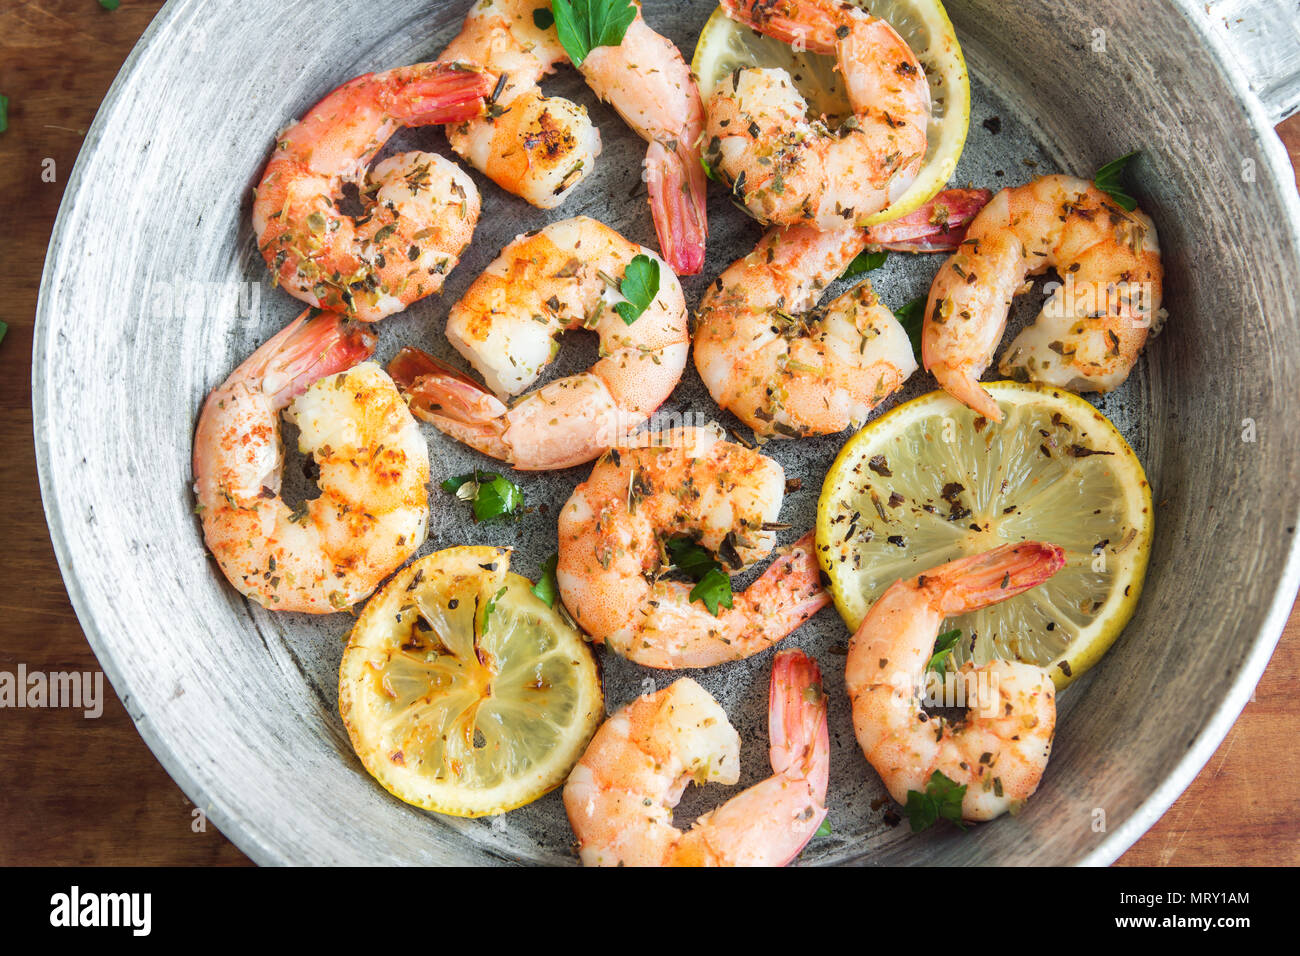 Roasted shrimps with lemon, garlic and herbs. Seafood, shelfish. Shrimps Prawns grilled with spices, garlic and lemon on black stone background, copy  - Stock Image